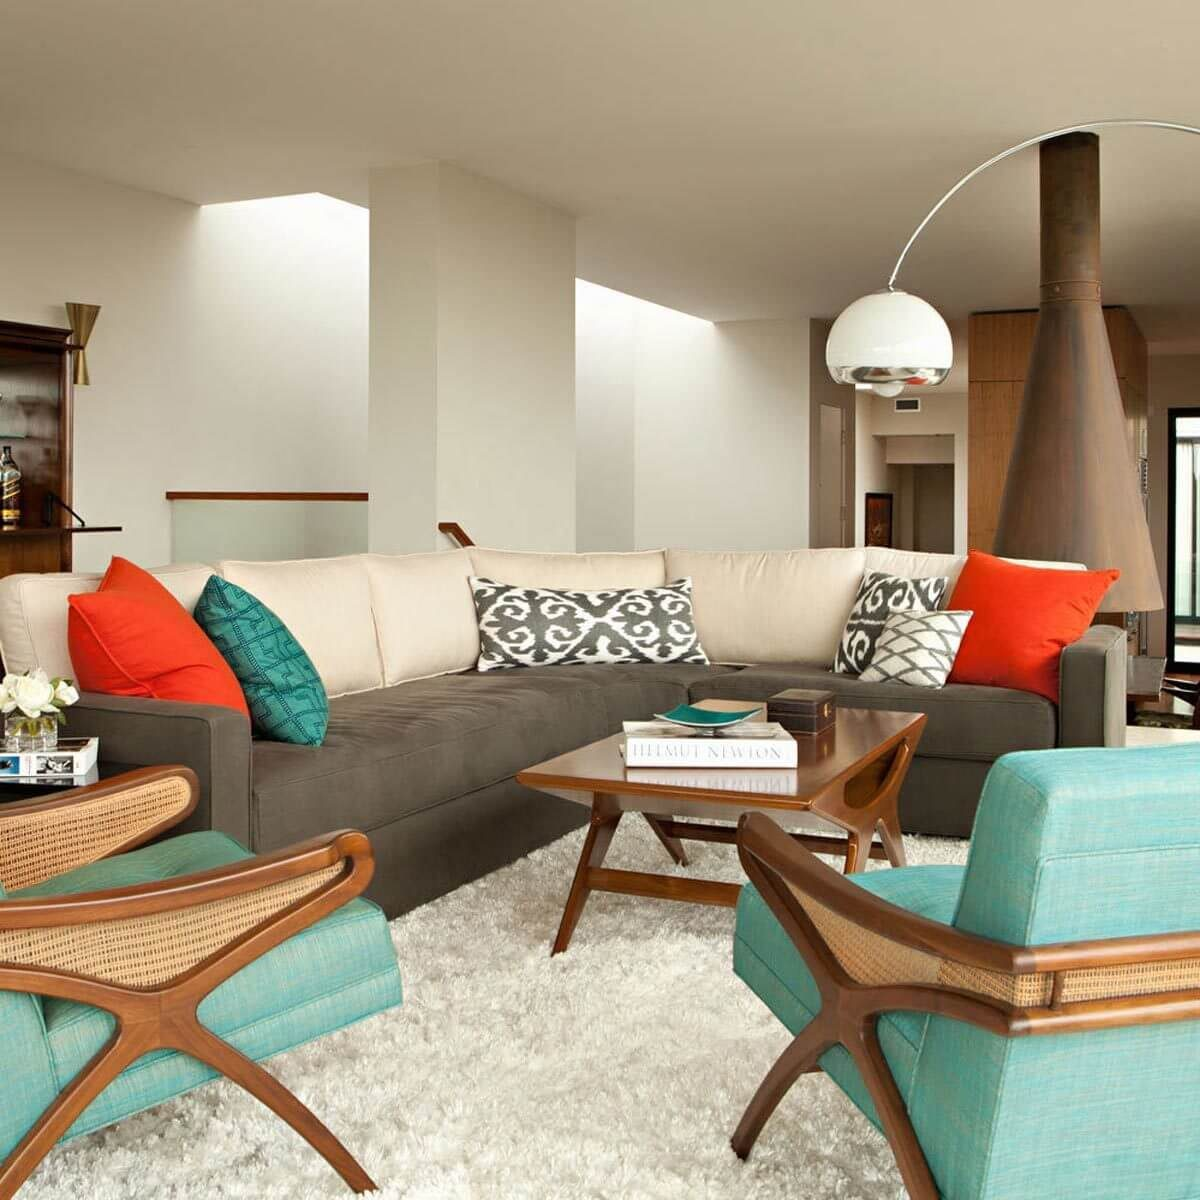 14 iconic mid century modern decor elements family - Modern family room design ideas ...